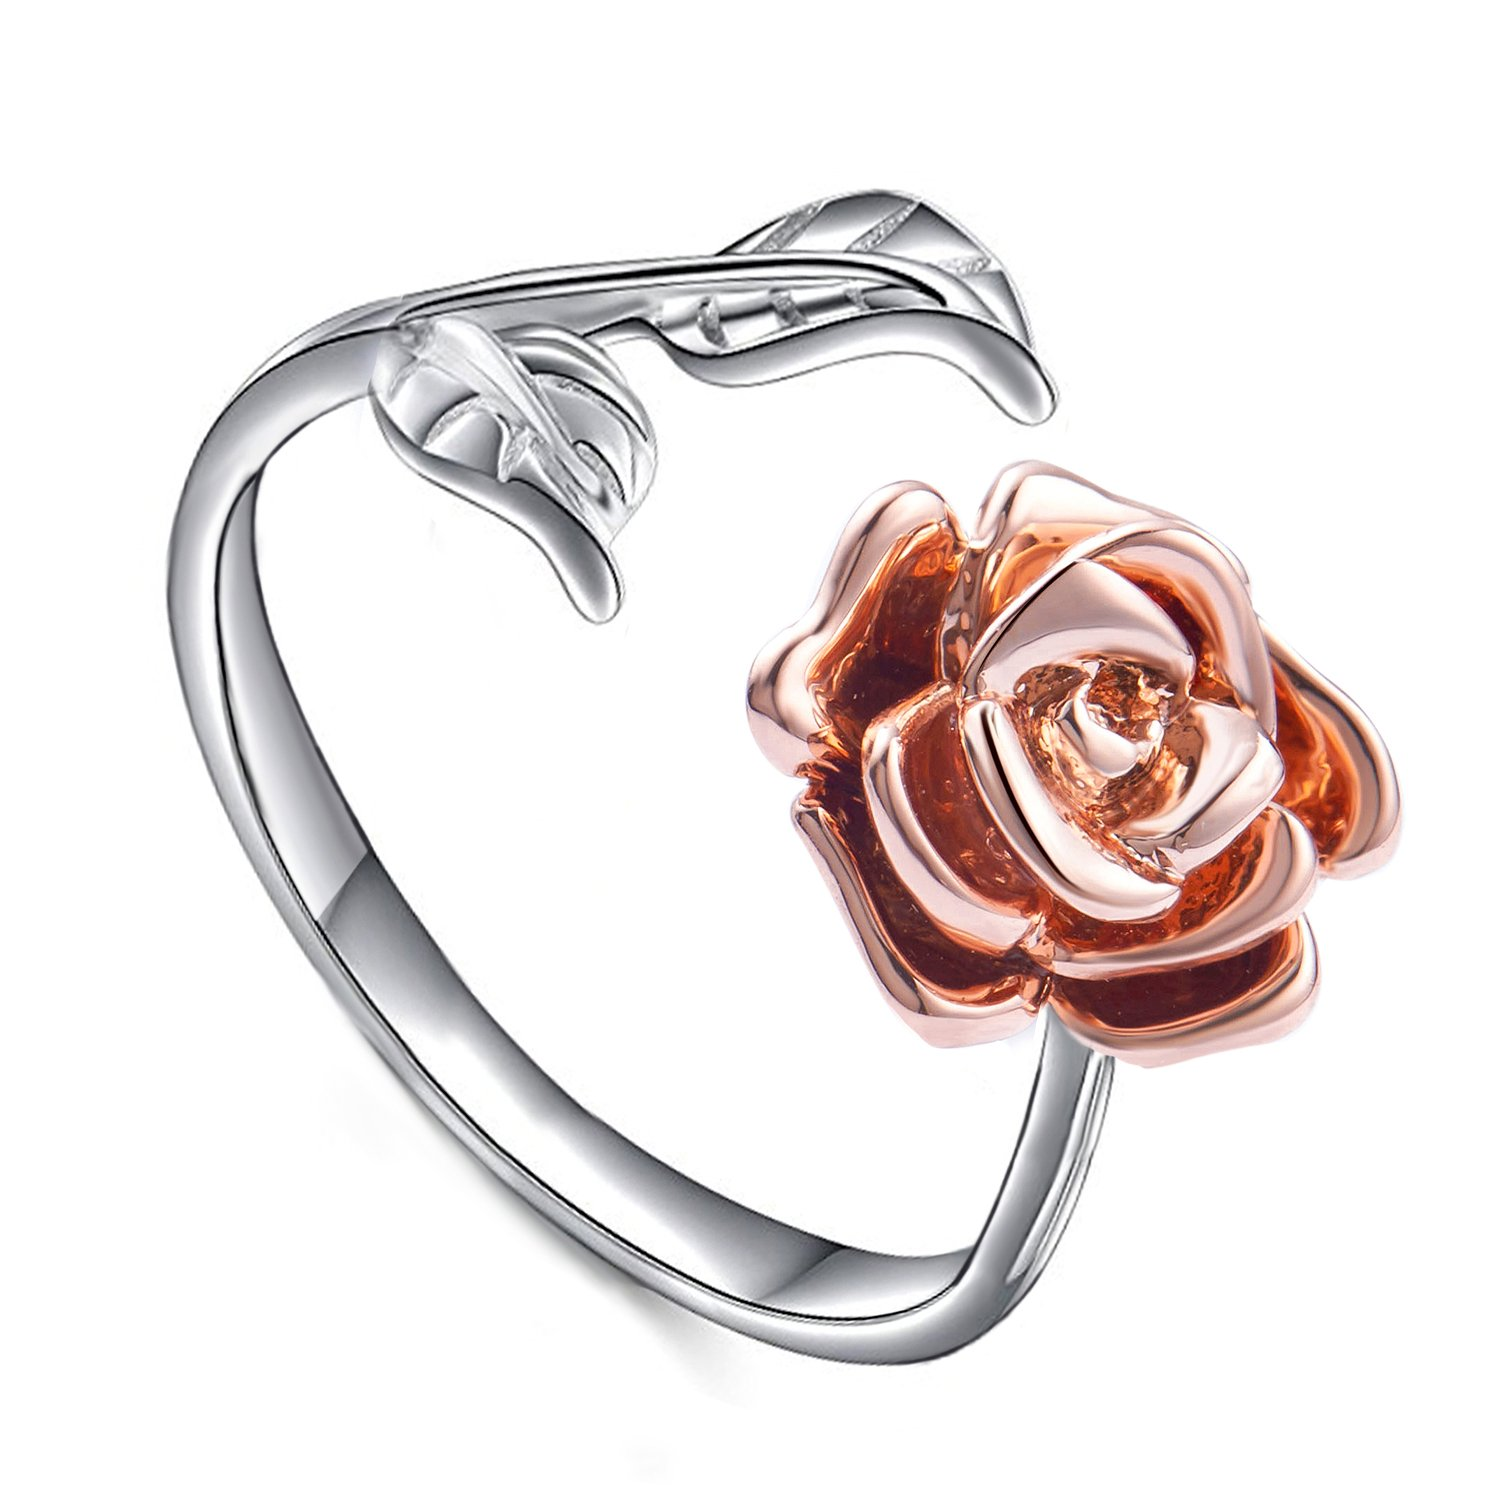 Rose Ring for Woman Flower Leaf Ring Adjustable by Meow Star (Image #1)